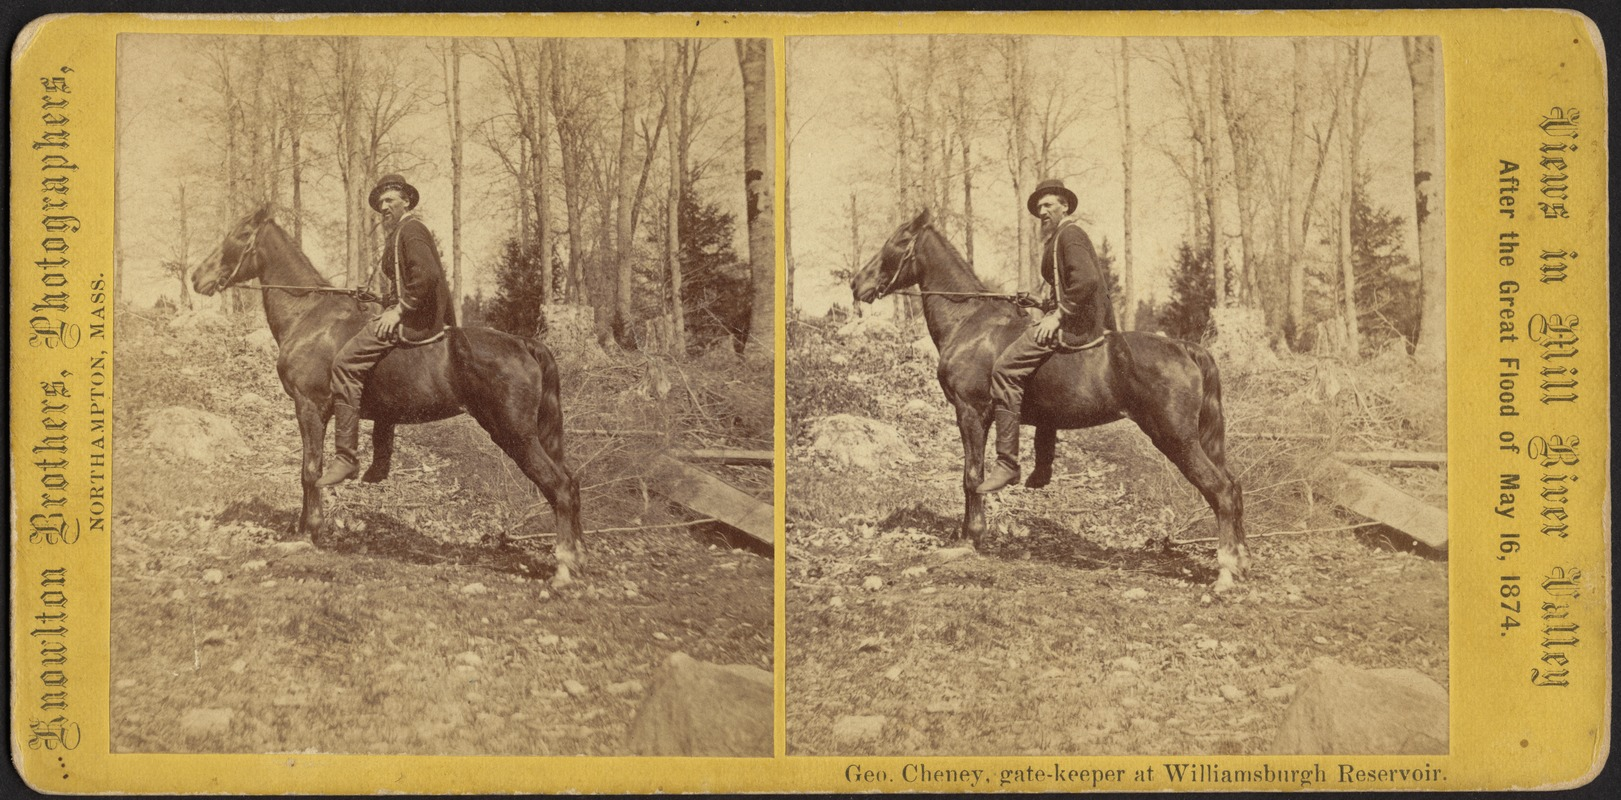 View of George Cheney, gate keeper of Reservoir, on his horse--Williamsburg